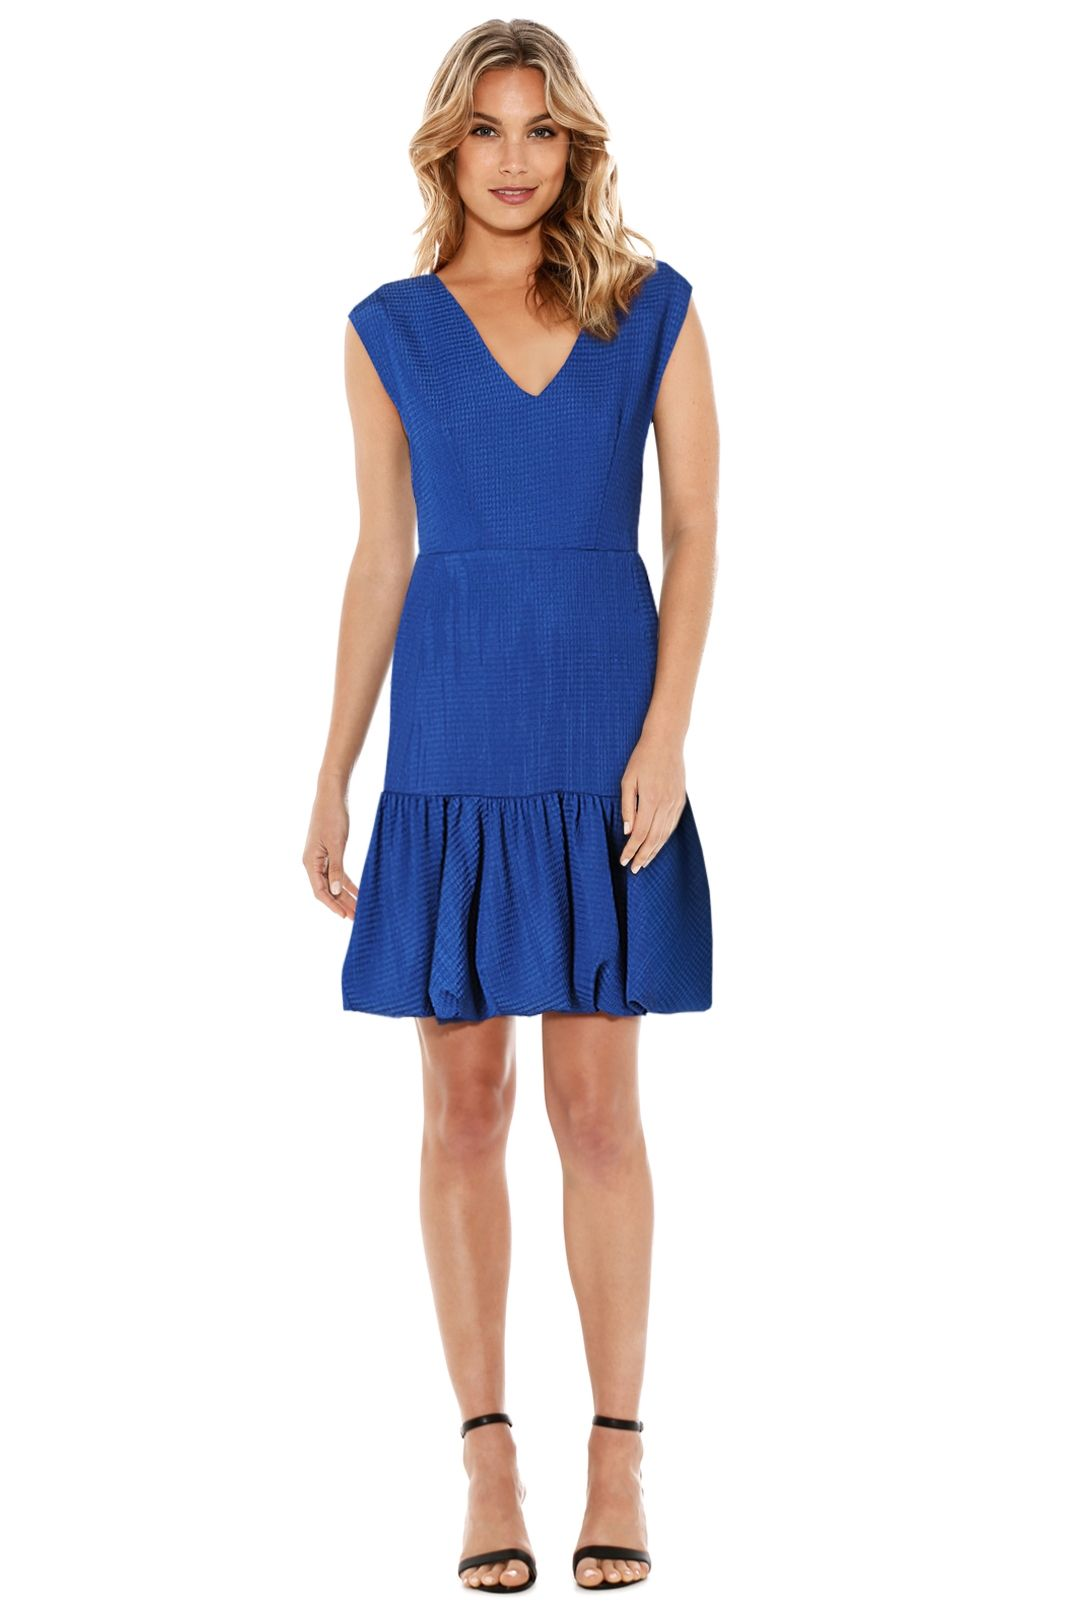 Claudie Peirlot - Royce Party Dress - Blue - Front